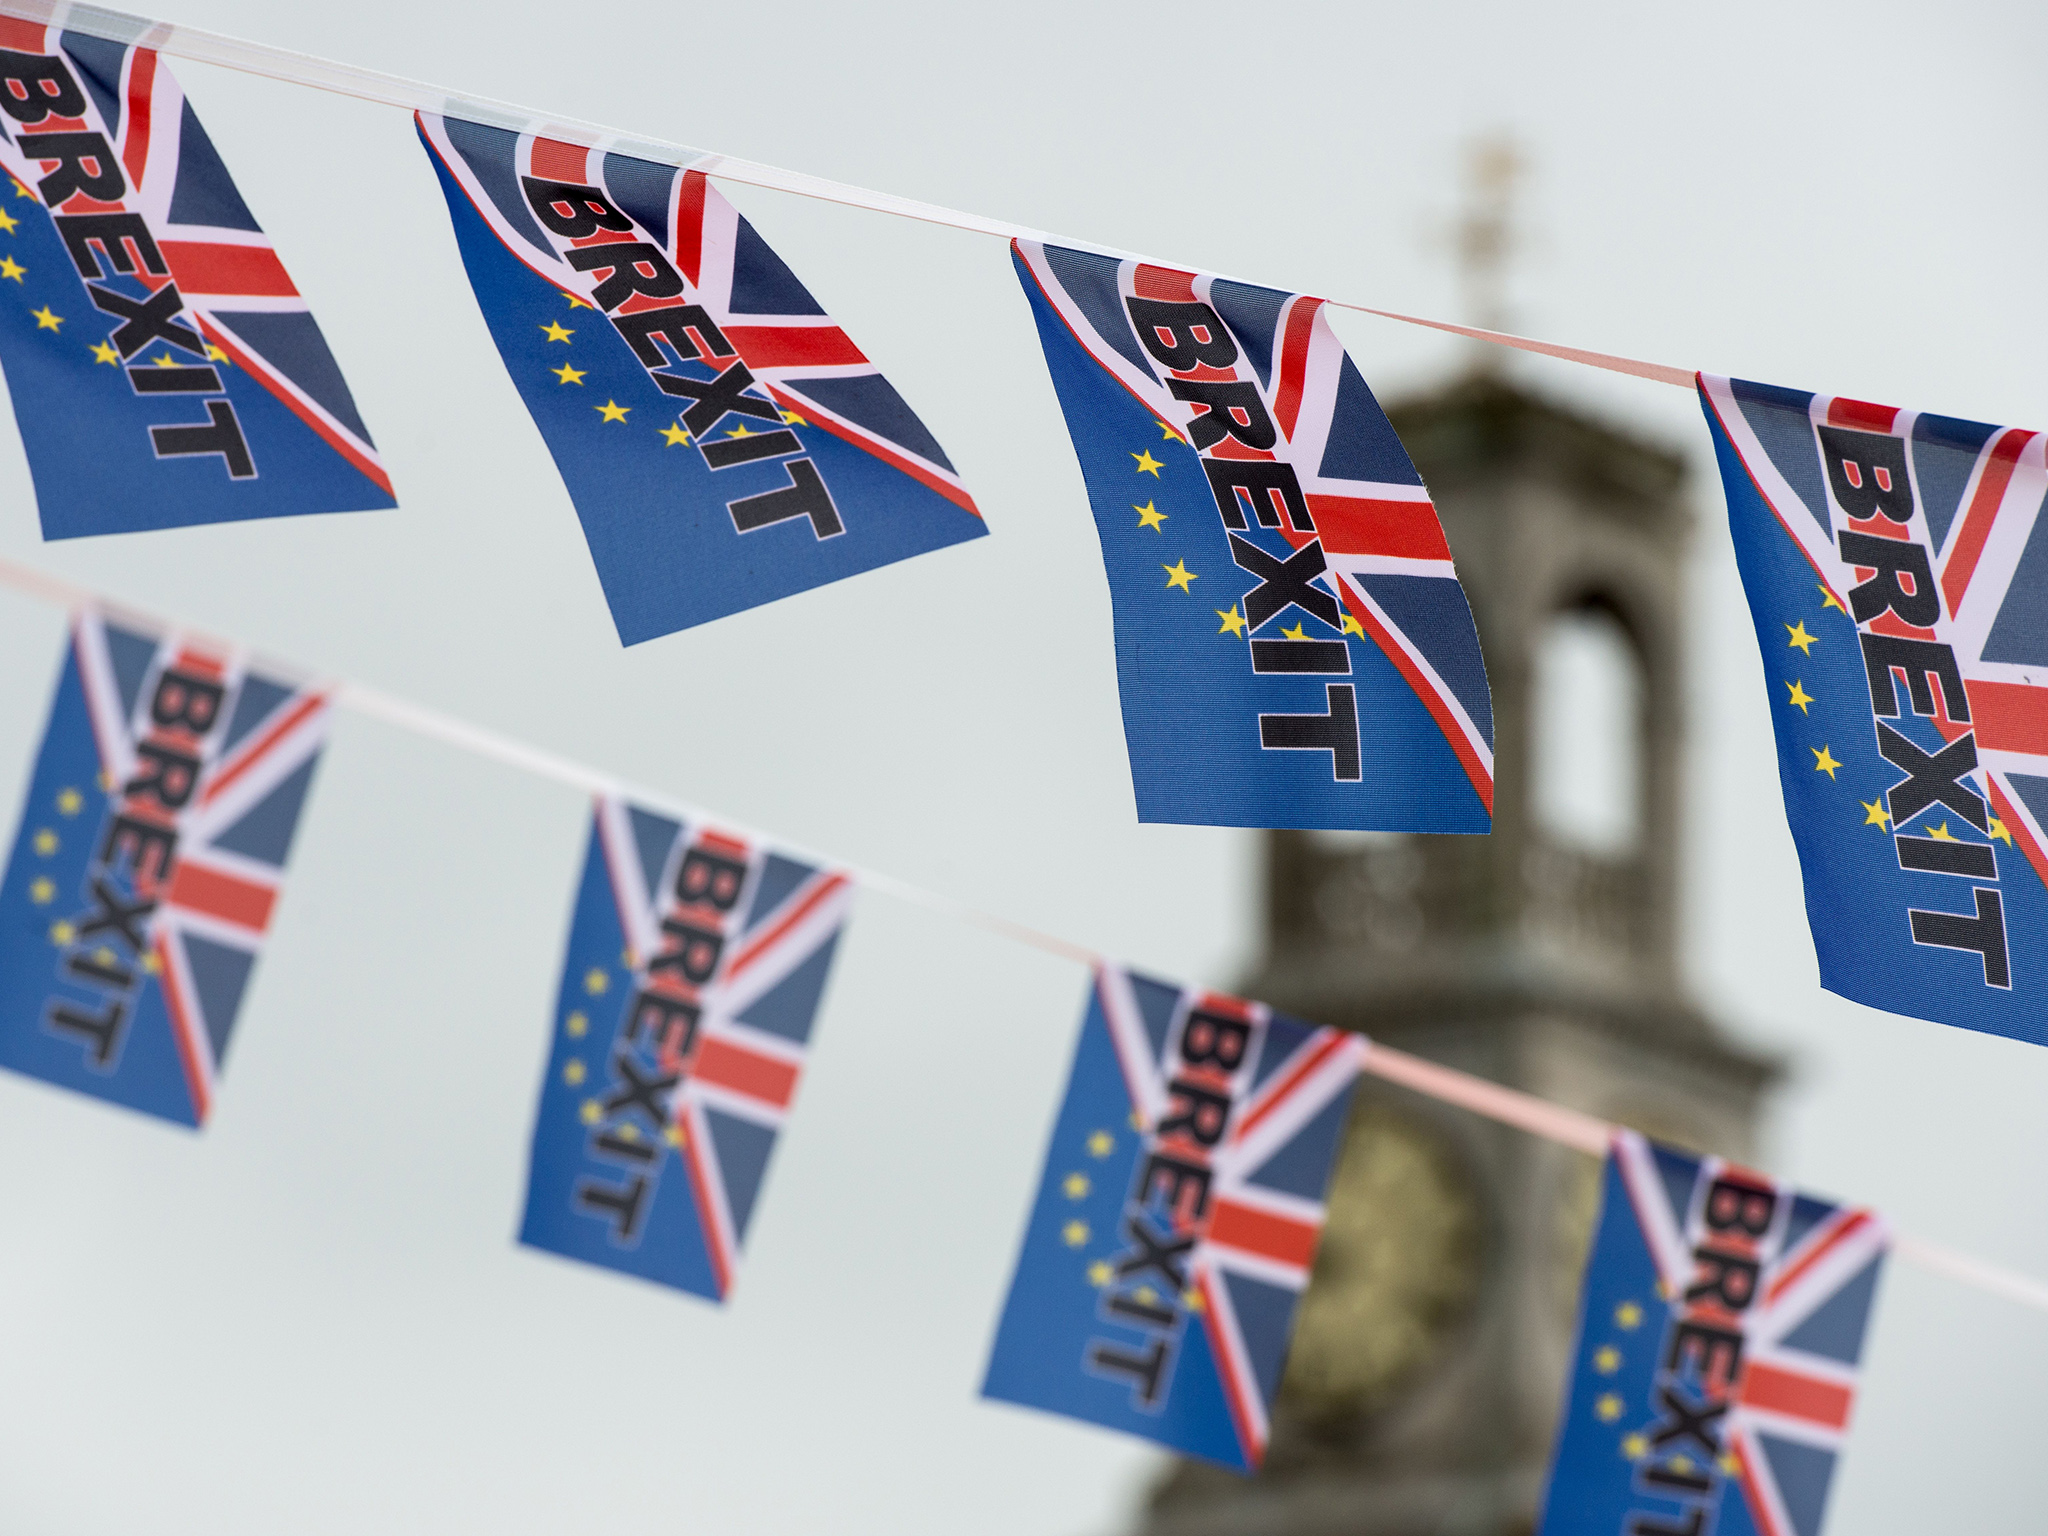 Pro-Brexit flags fly from a fishing boat moored in Ramsgate on June 13, 2016. Britain's opposition Labour Party today scrambled to make the case for Europe to its members as world stock markets slipped amid concern over a British exit from the EU in a knife-edge referendum next week. / AFP / CHRIS J RATCLIFFE (Photo credit should read CHRIS J RATCLIFFE/AFP/Getty Images)